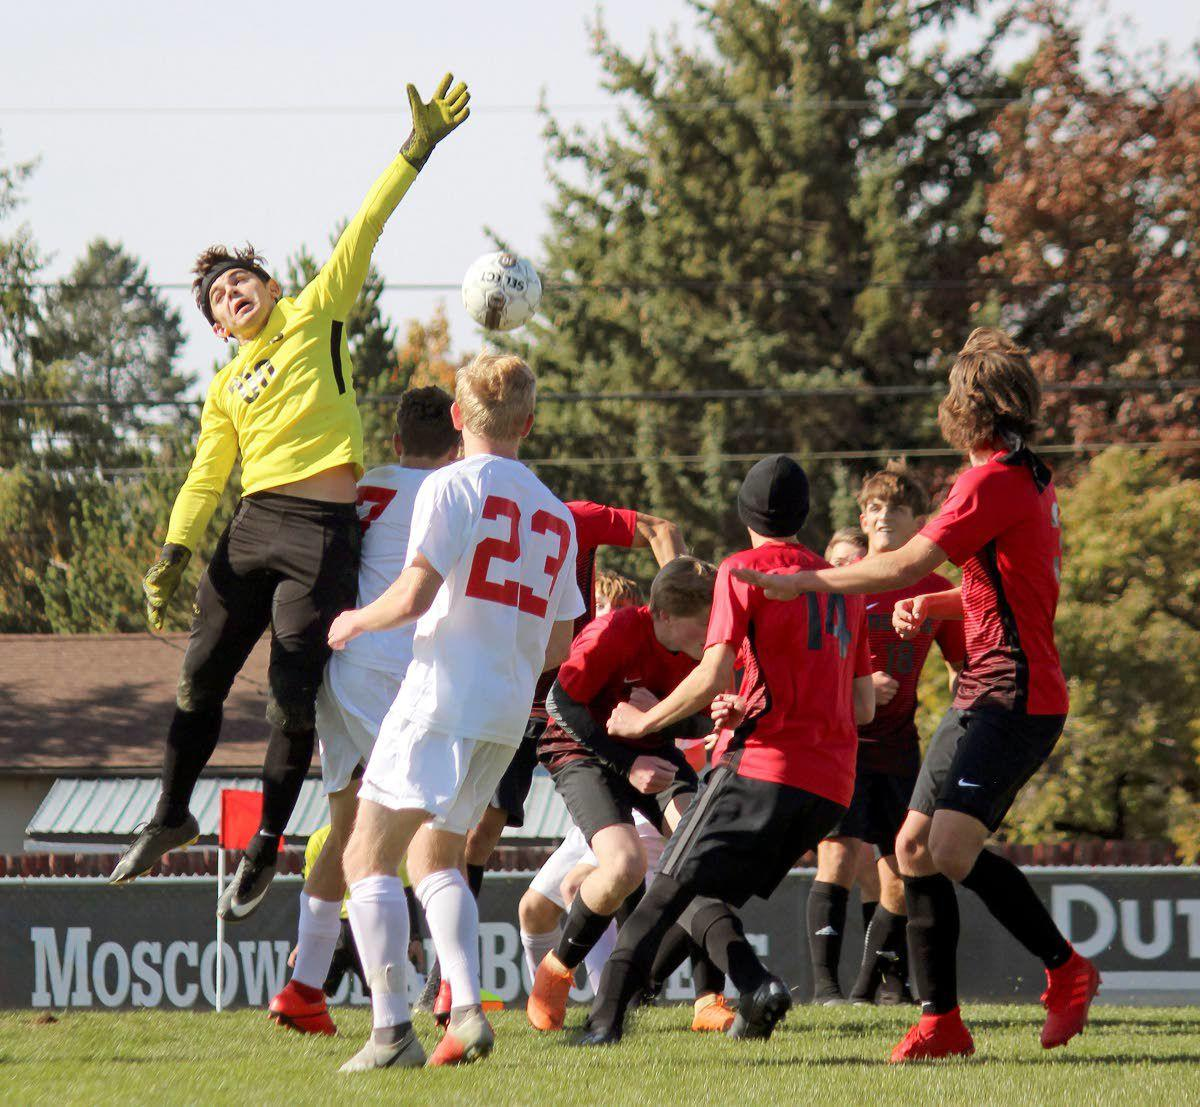 Moscow High grad relished his time on the soccer field